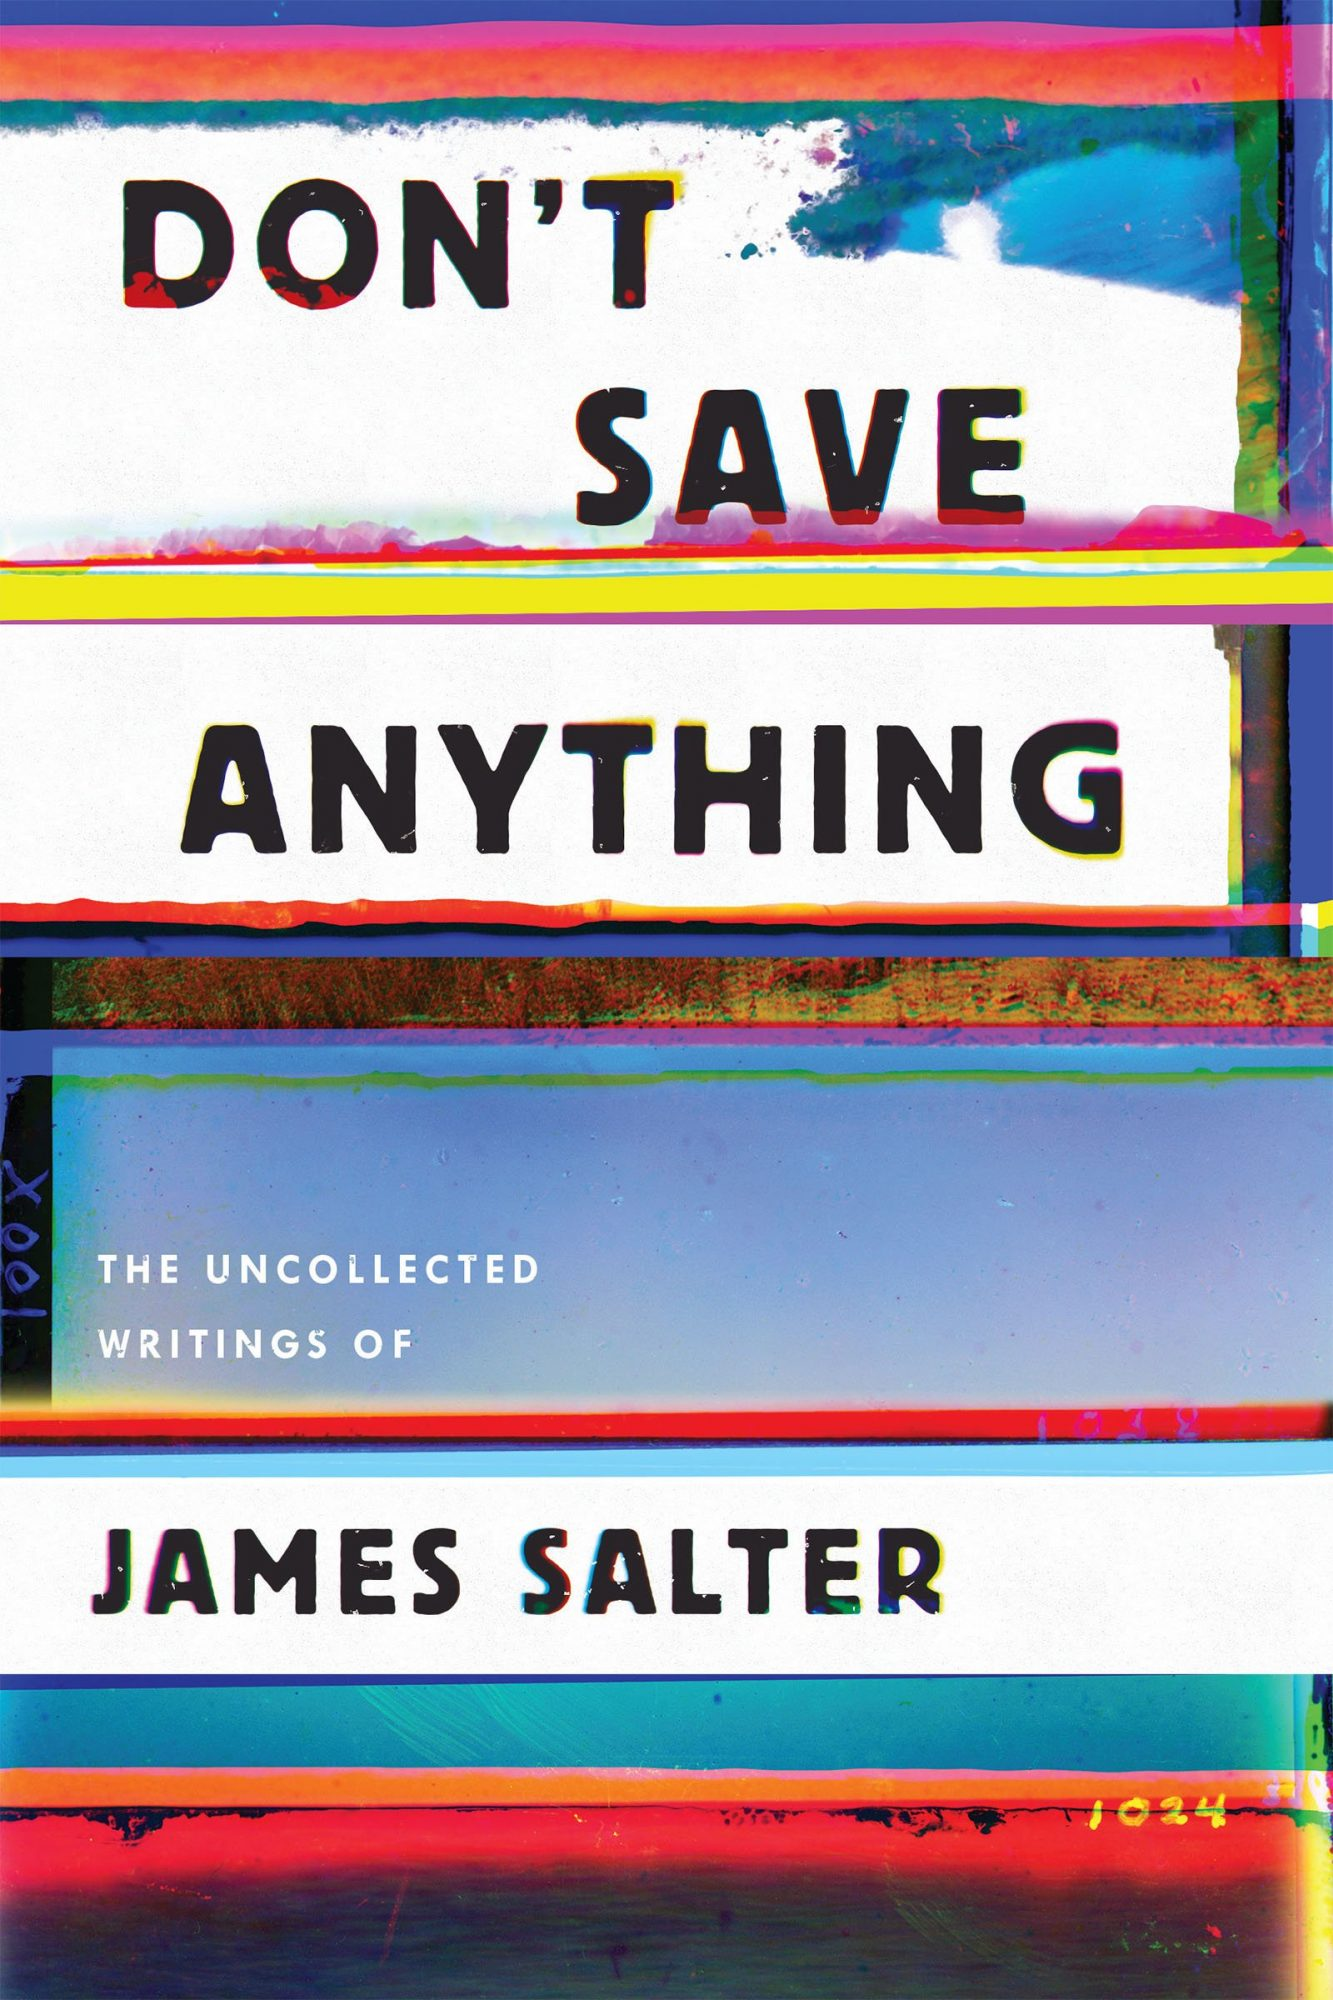 Don't Save Anything: the Uncollected Writings of James Salter by James Salter